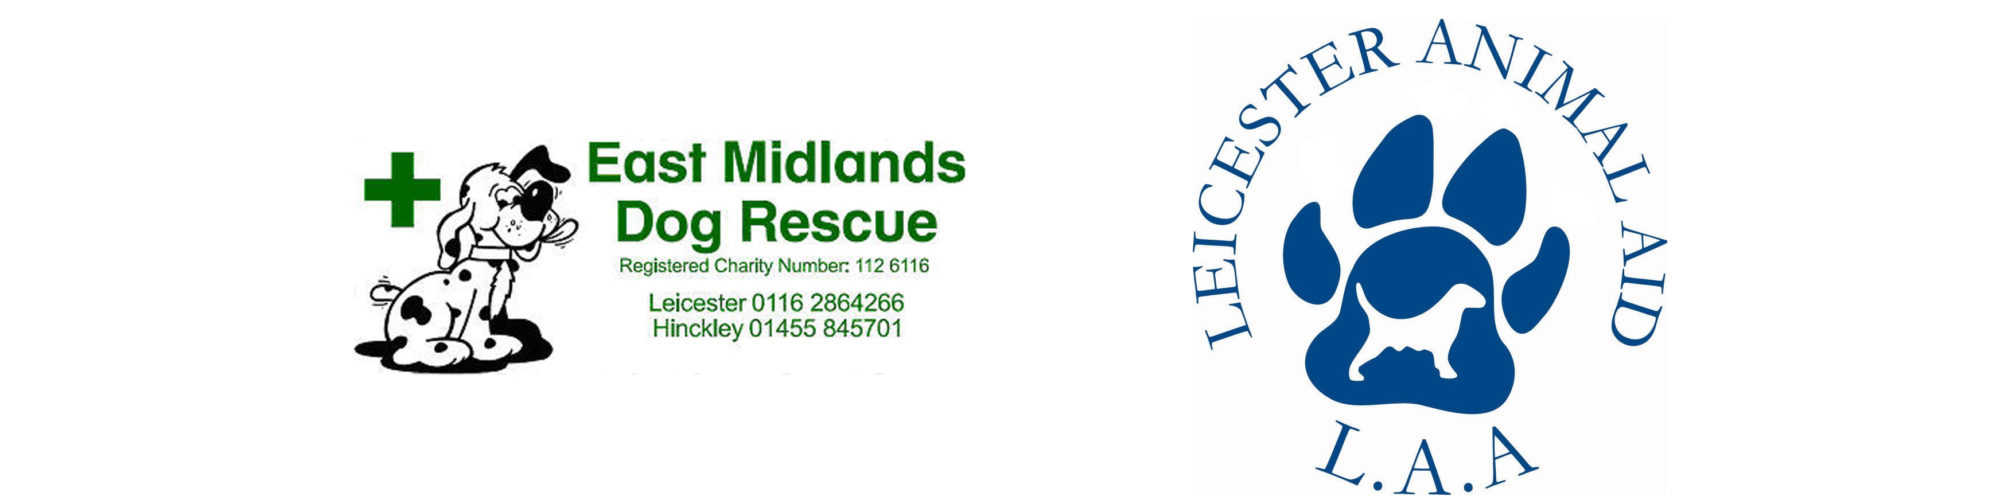 Dogathon - fundraising for East Midlands Dog rescue and Leicester Animal Aid